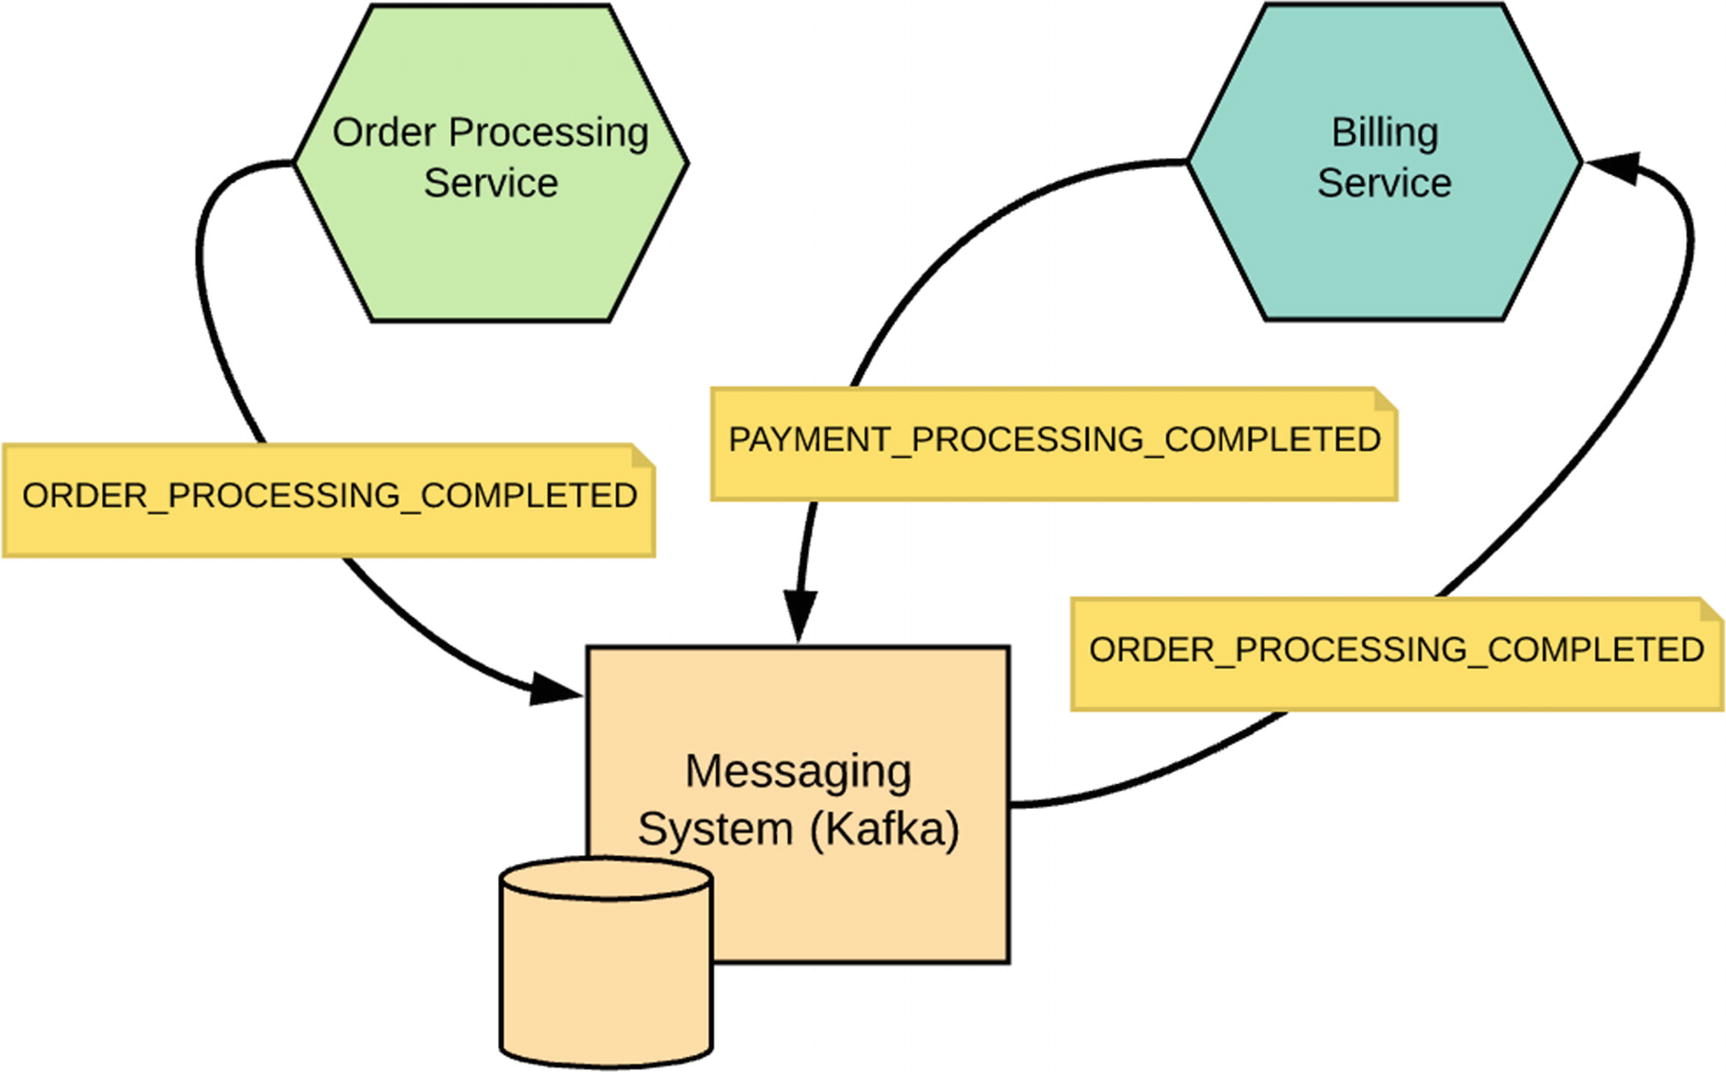 Developing Services | SpringerLink